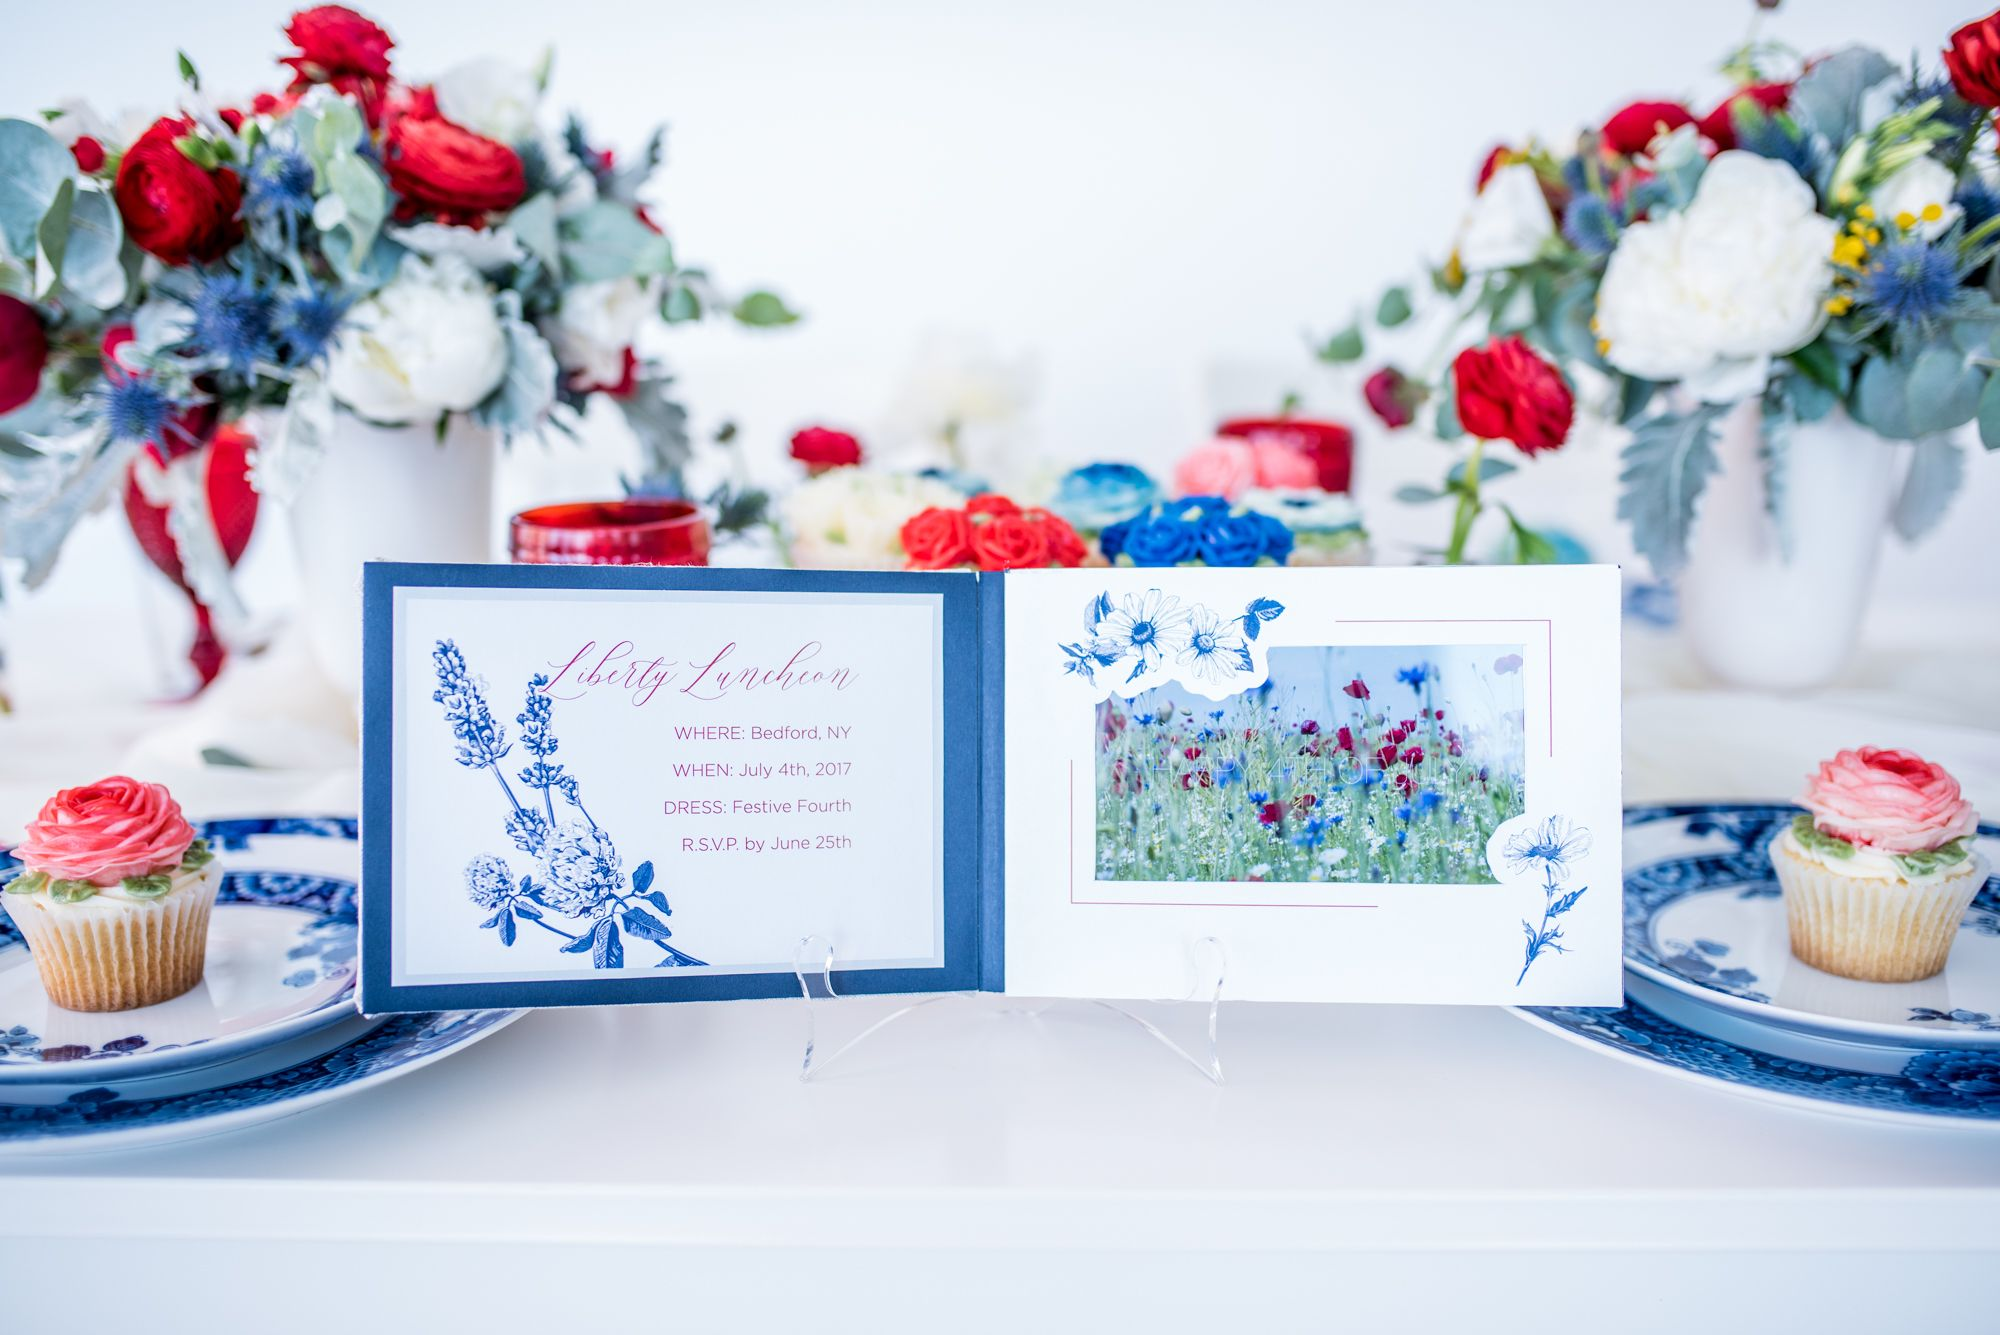 Blue Ming Dinnerware featured in Colin Cowie\u0027s Liberty Luncheon. Photography by Artvesta Studio Design by Colin Cowie Invitations by Engaging Invites ...  sc 1 st  Pinterest & Blue Ming Dinnerware featured in Colin Cowie\u0027s Liberty Luncheon ...